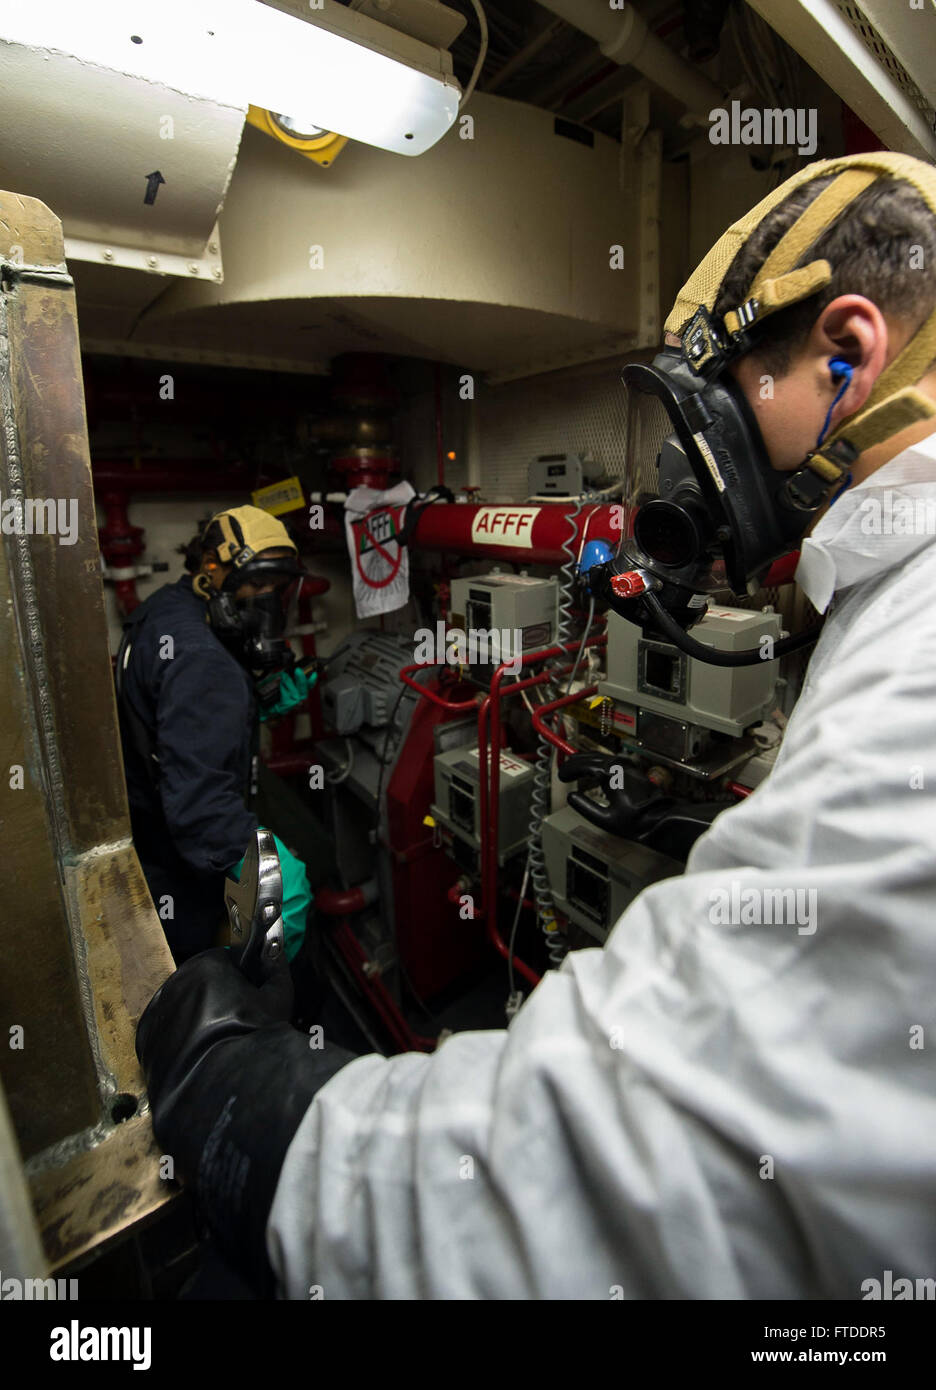 150615-N-FQ994-171 ROTA, Spain (June 15, 2015) Hull Technician 3rd Class Valerie Tejada, from New York City, left, - Stock Image